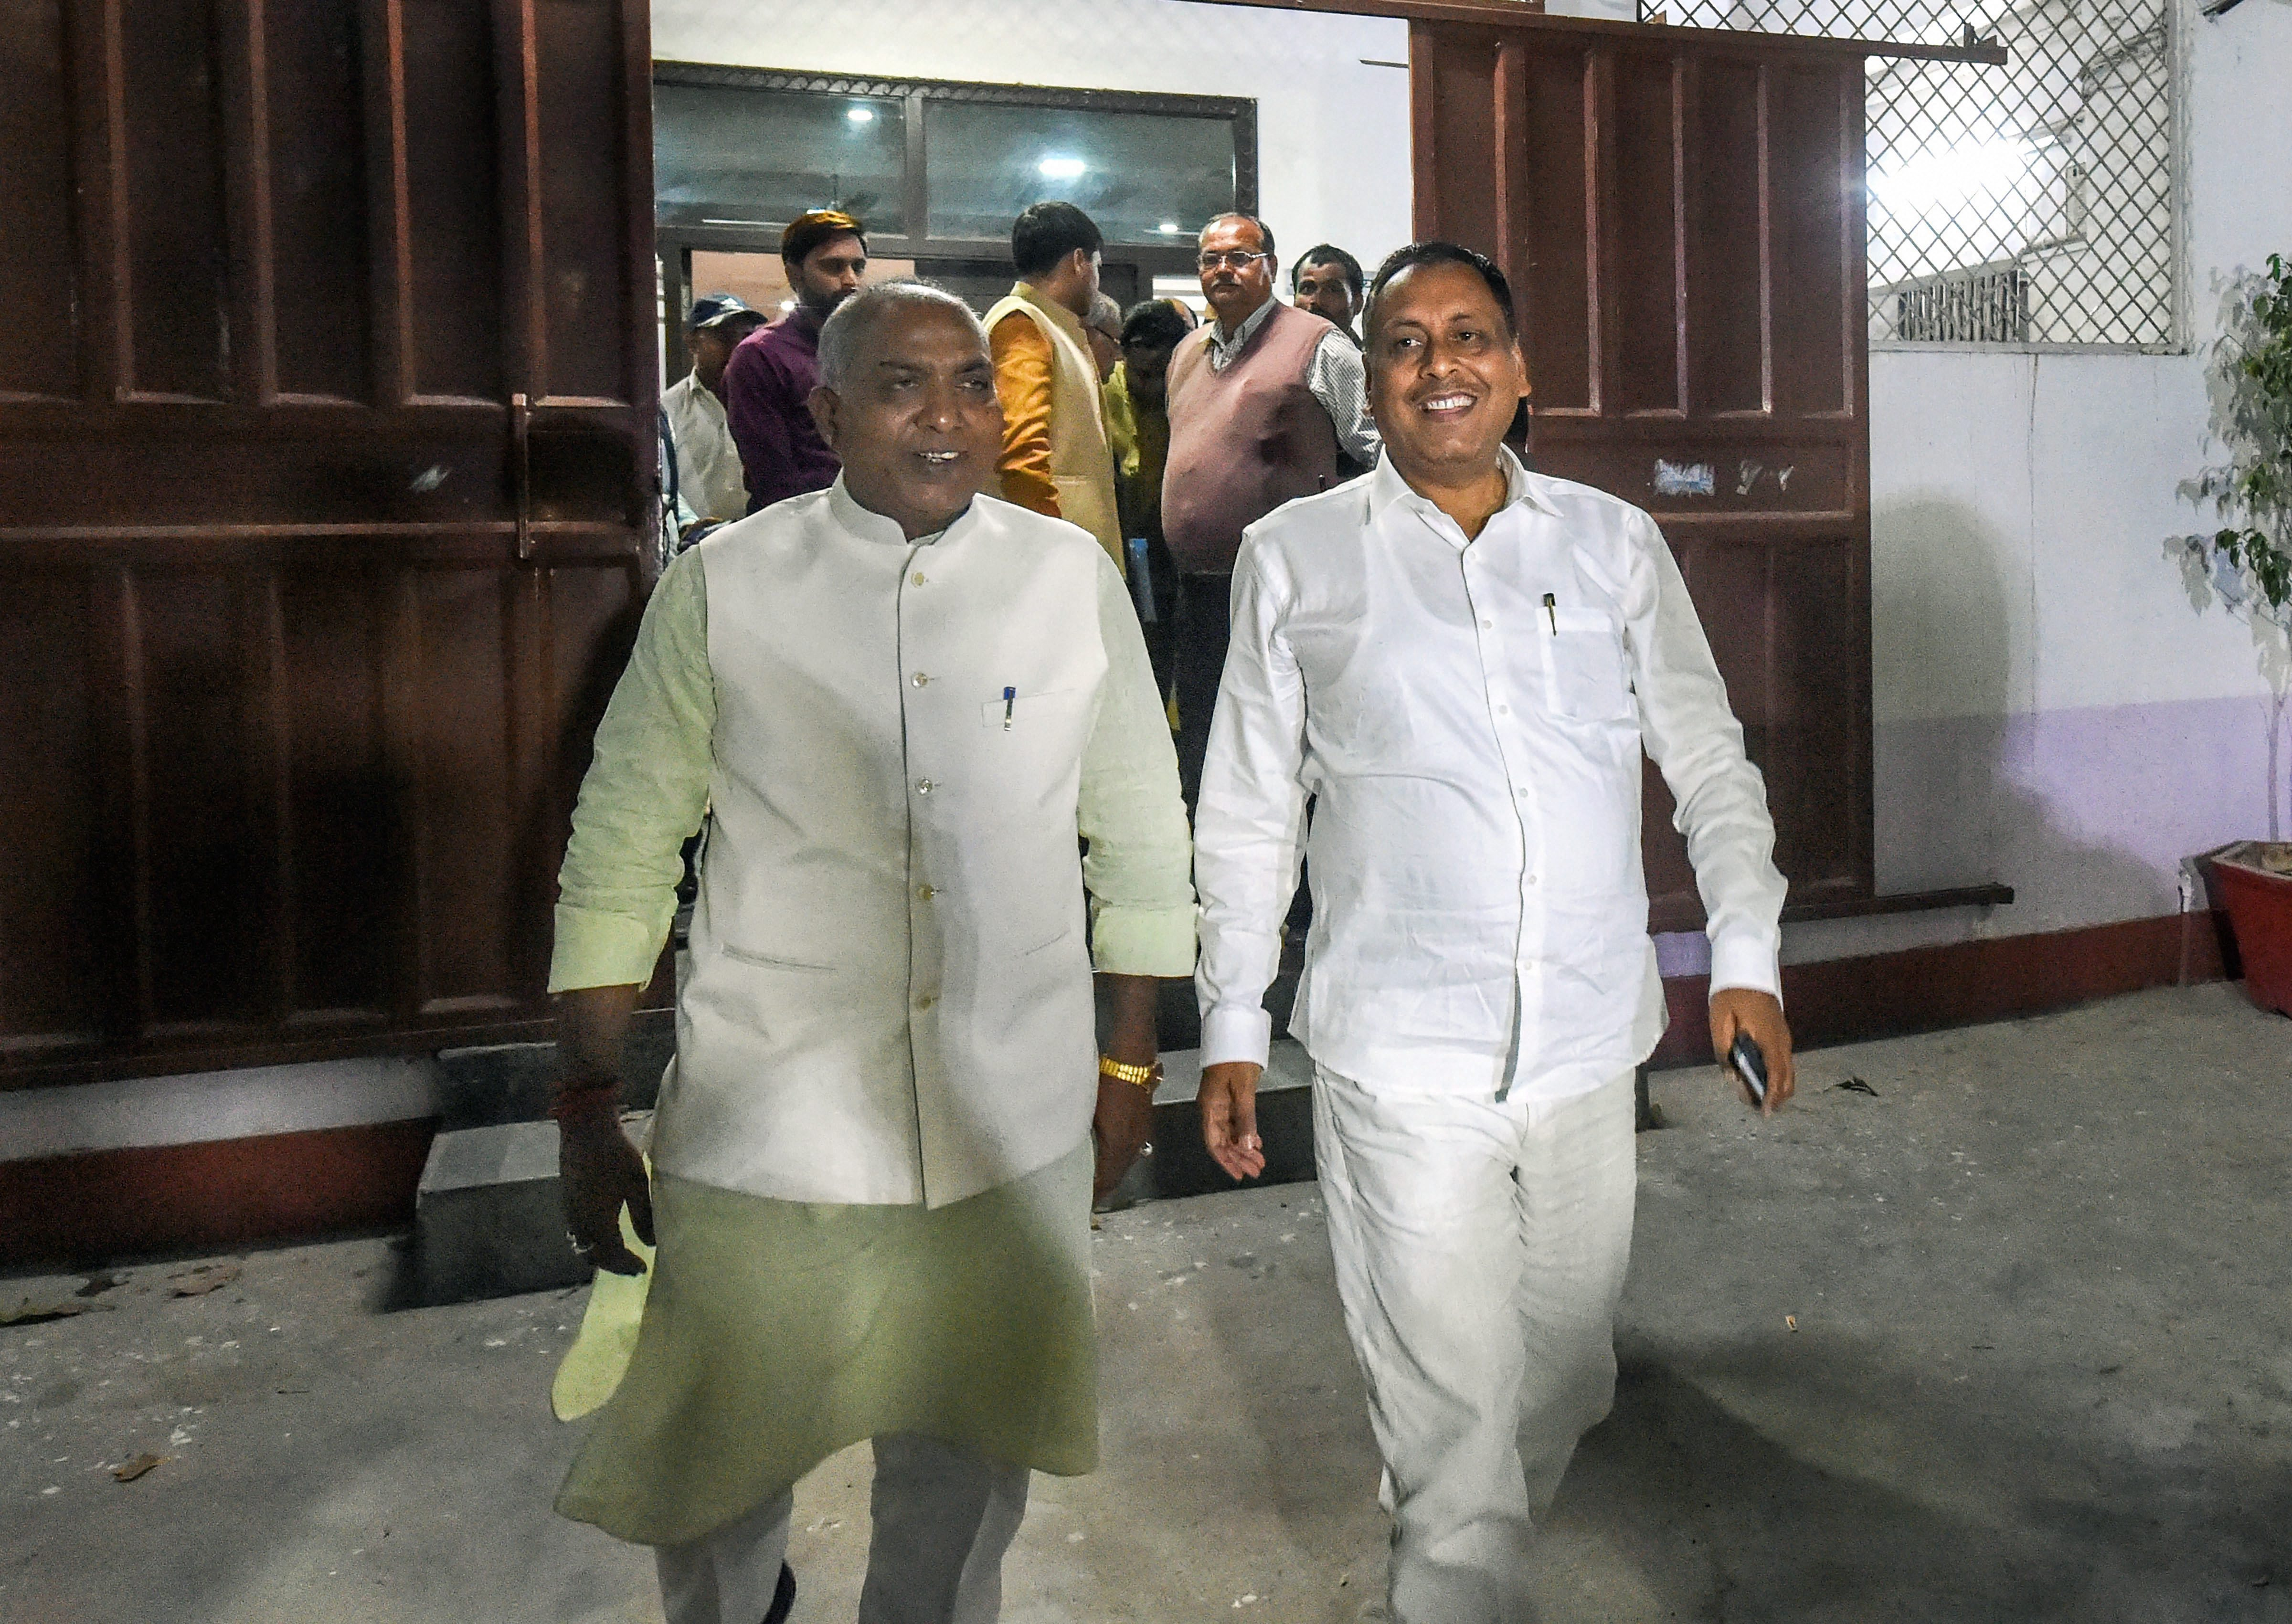 BJP MLA Rakesh Singh Baghel (right) after meeting the party's state unit president Mahendra Nath Pandey in Lucknow on Thursday, March 7. Baghel had come to blows with party MP Sharad Tripathi in a meeting in Sant Kabirnagar on Wednesday.